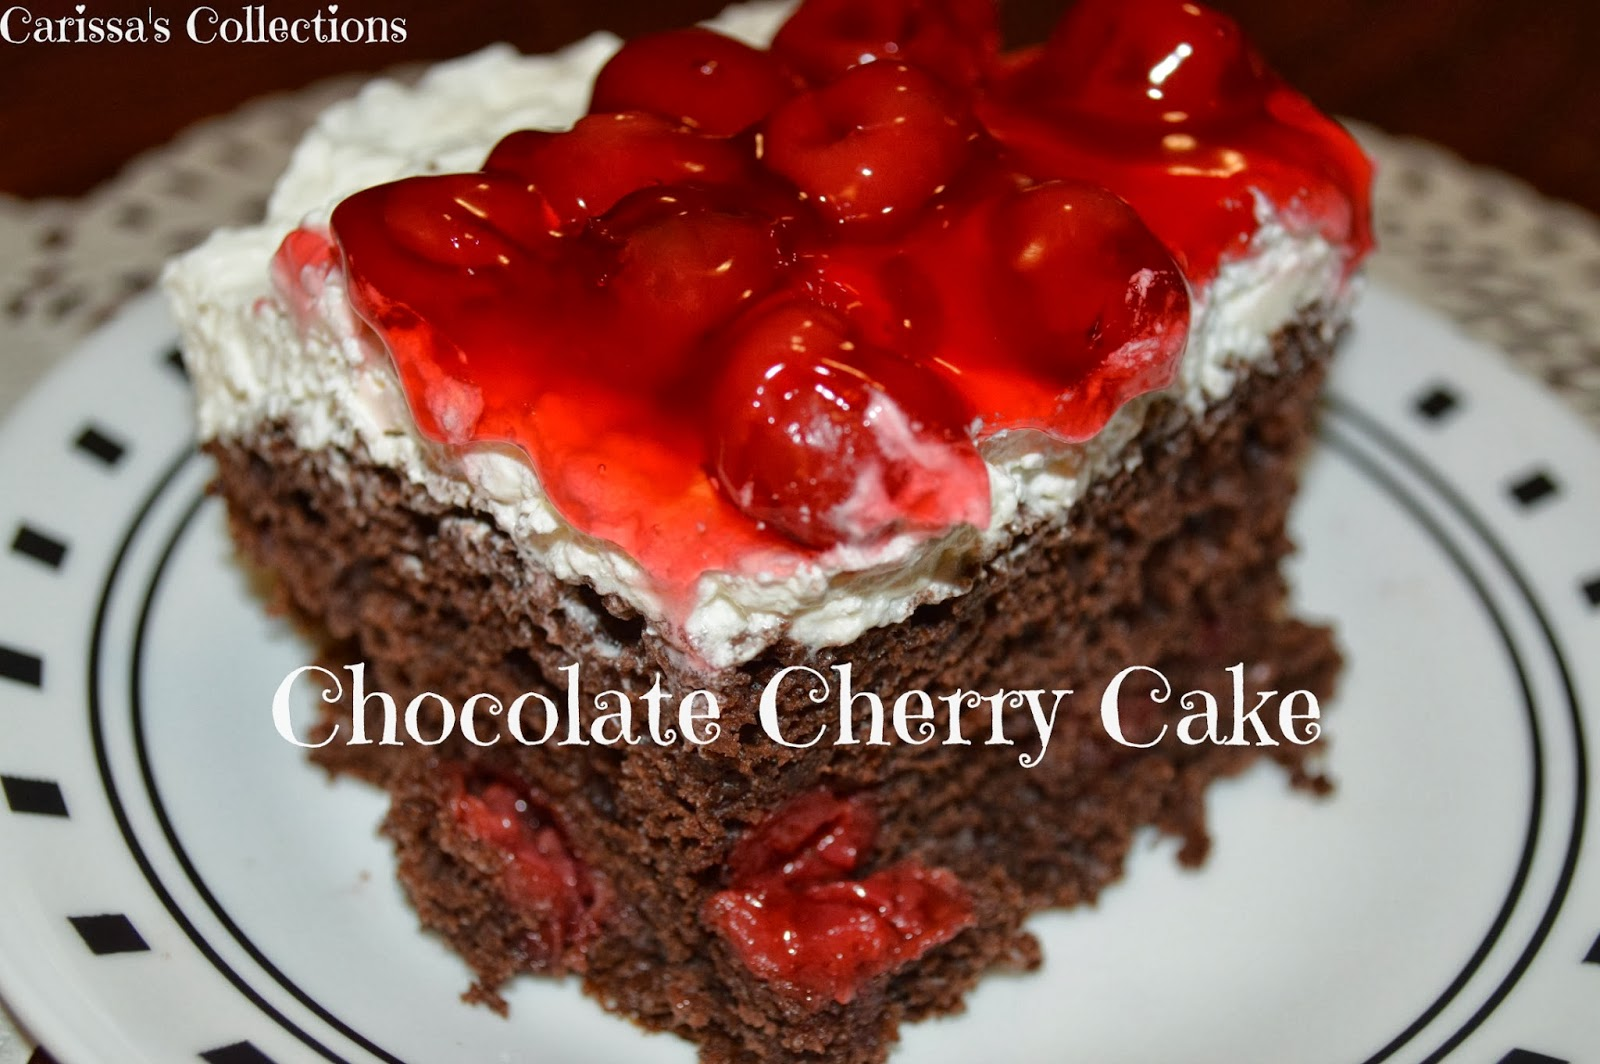 Carissa's Collections: Chocolate Cherry Cake